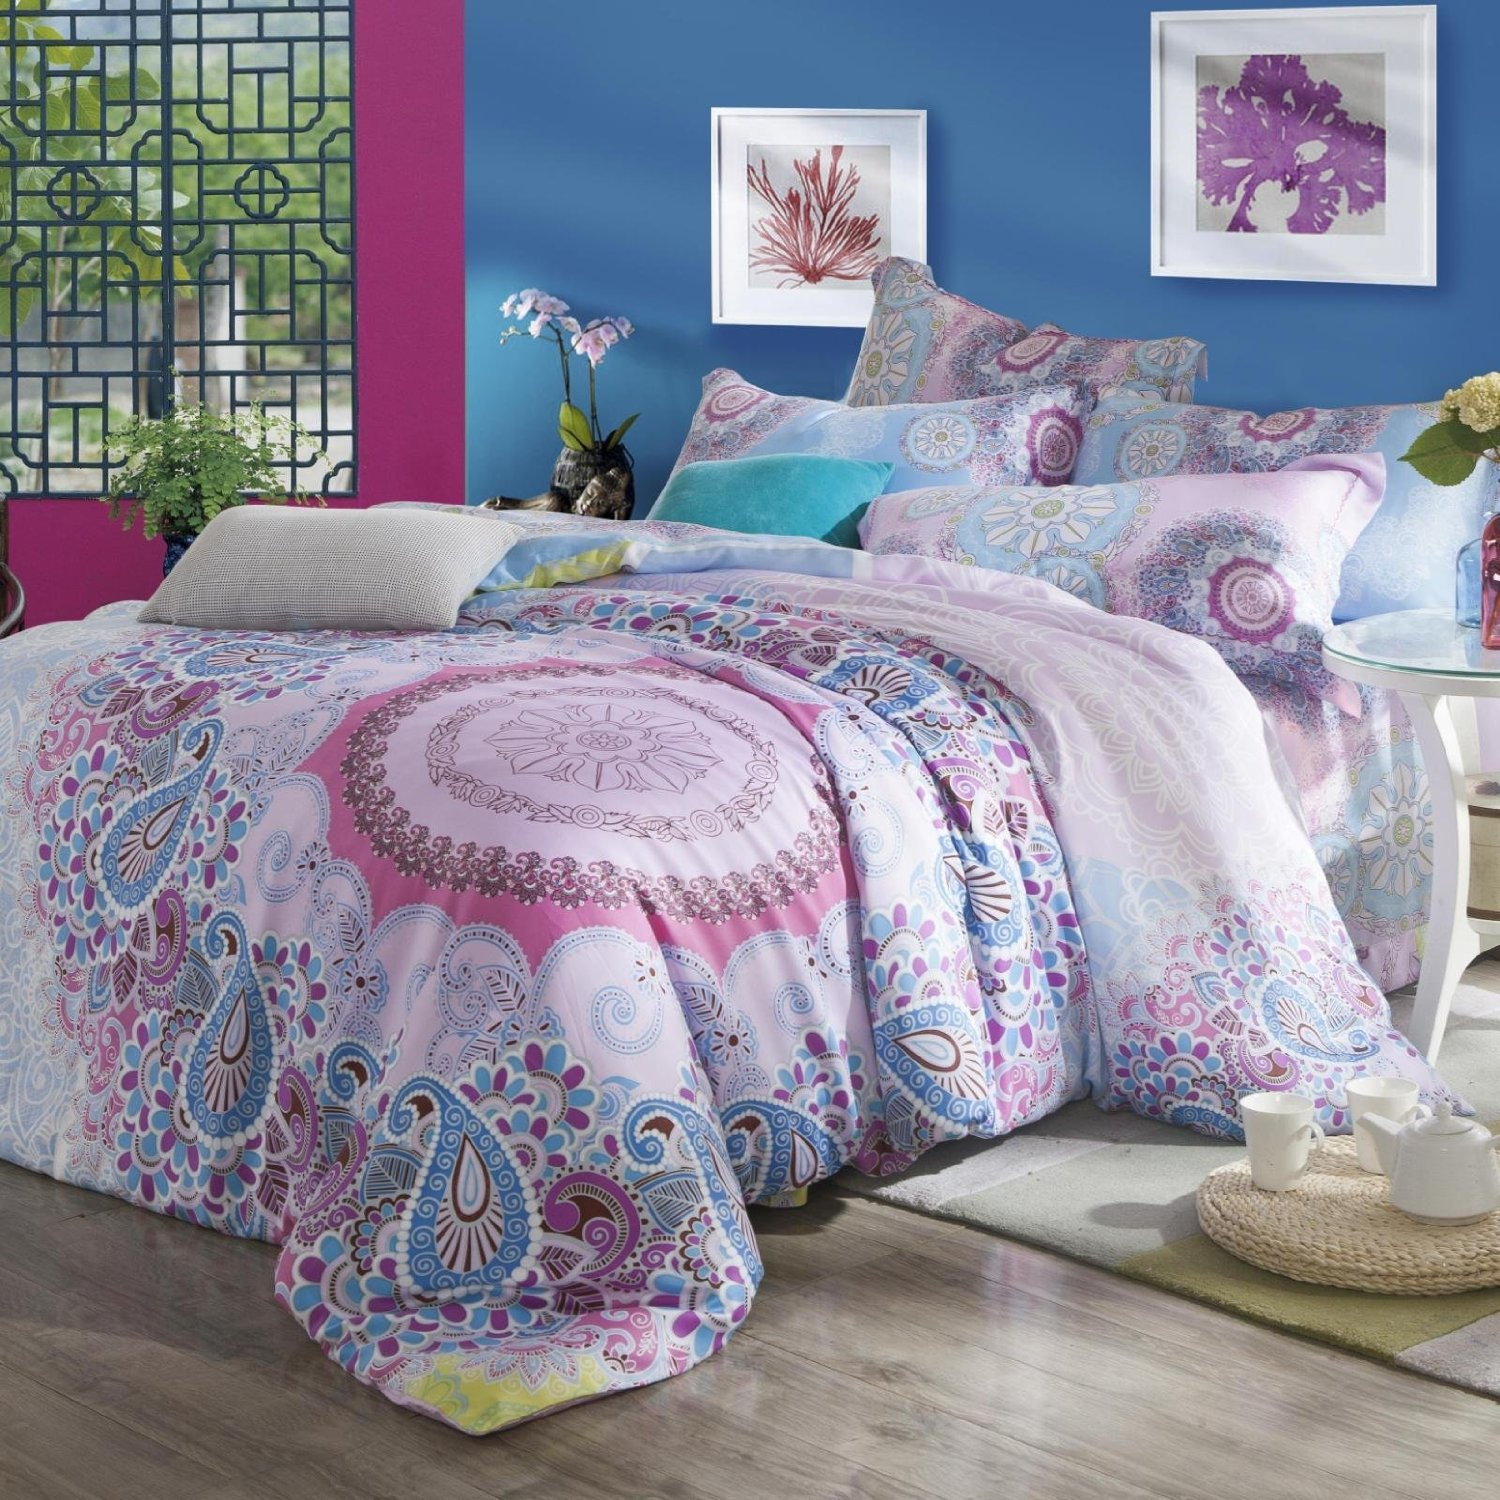 Cute Queen and King Bed size bohemian duvet covers with unique pattern for Bed room Furniture Ideas